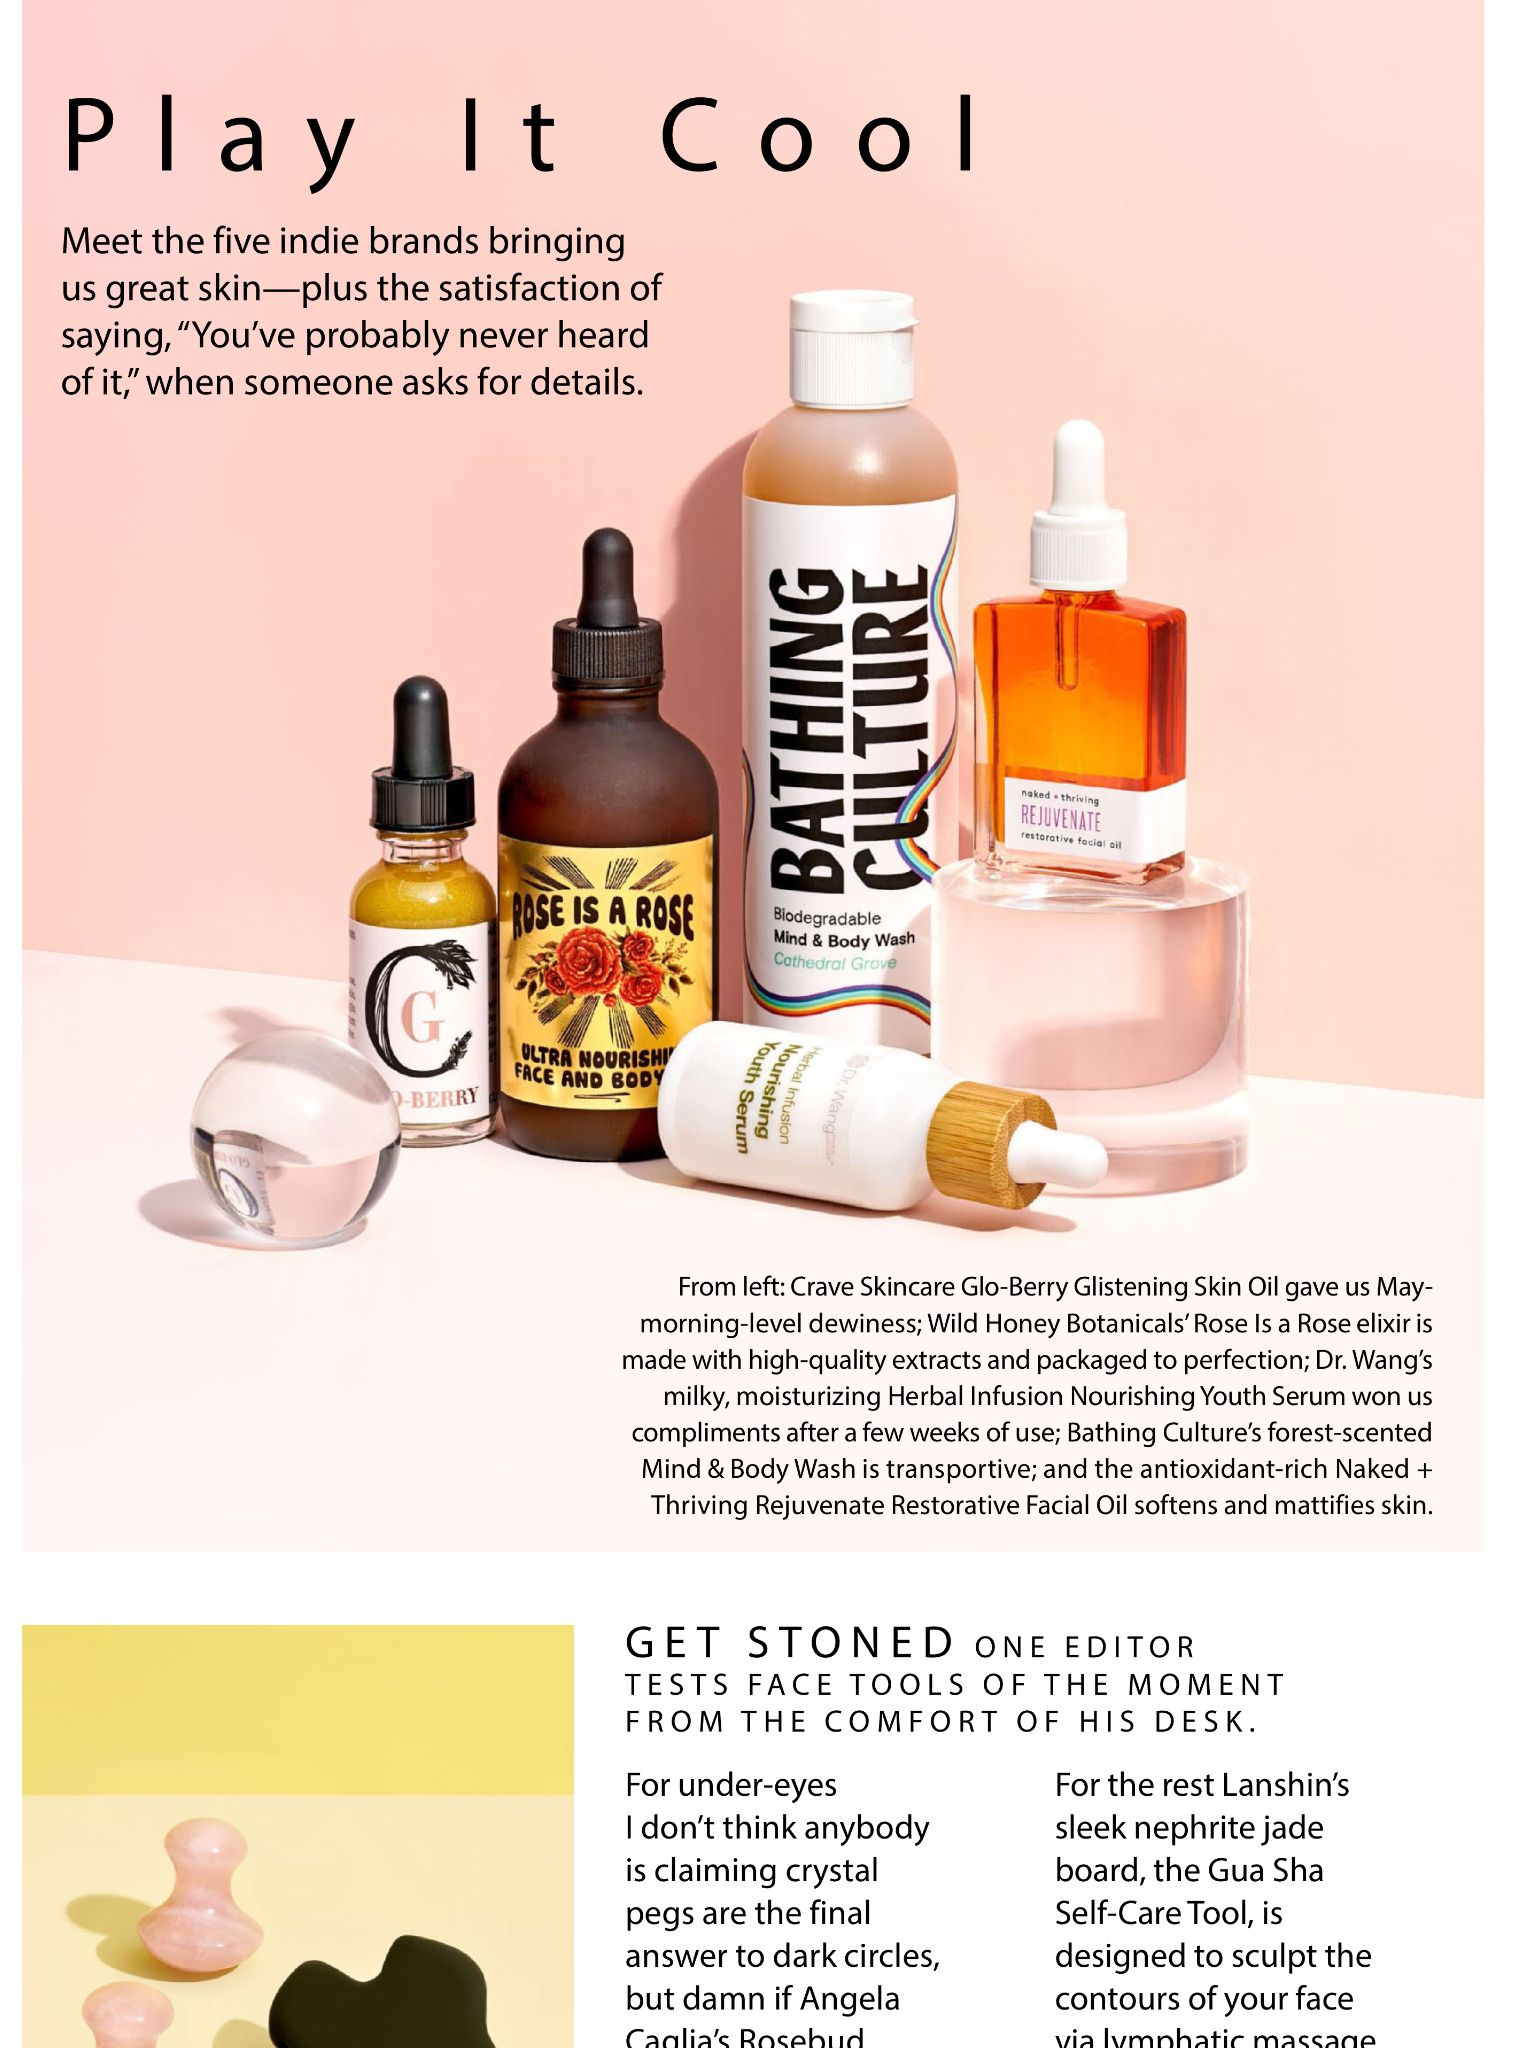 """Play It Cool"" from Allure, July 20185 new indie brands"